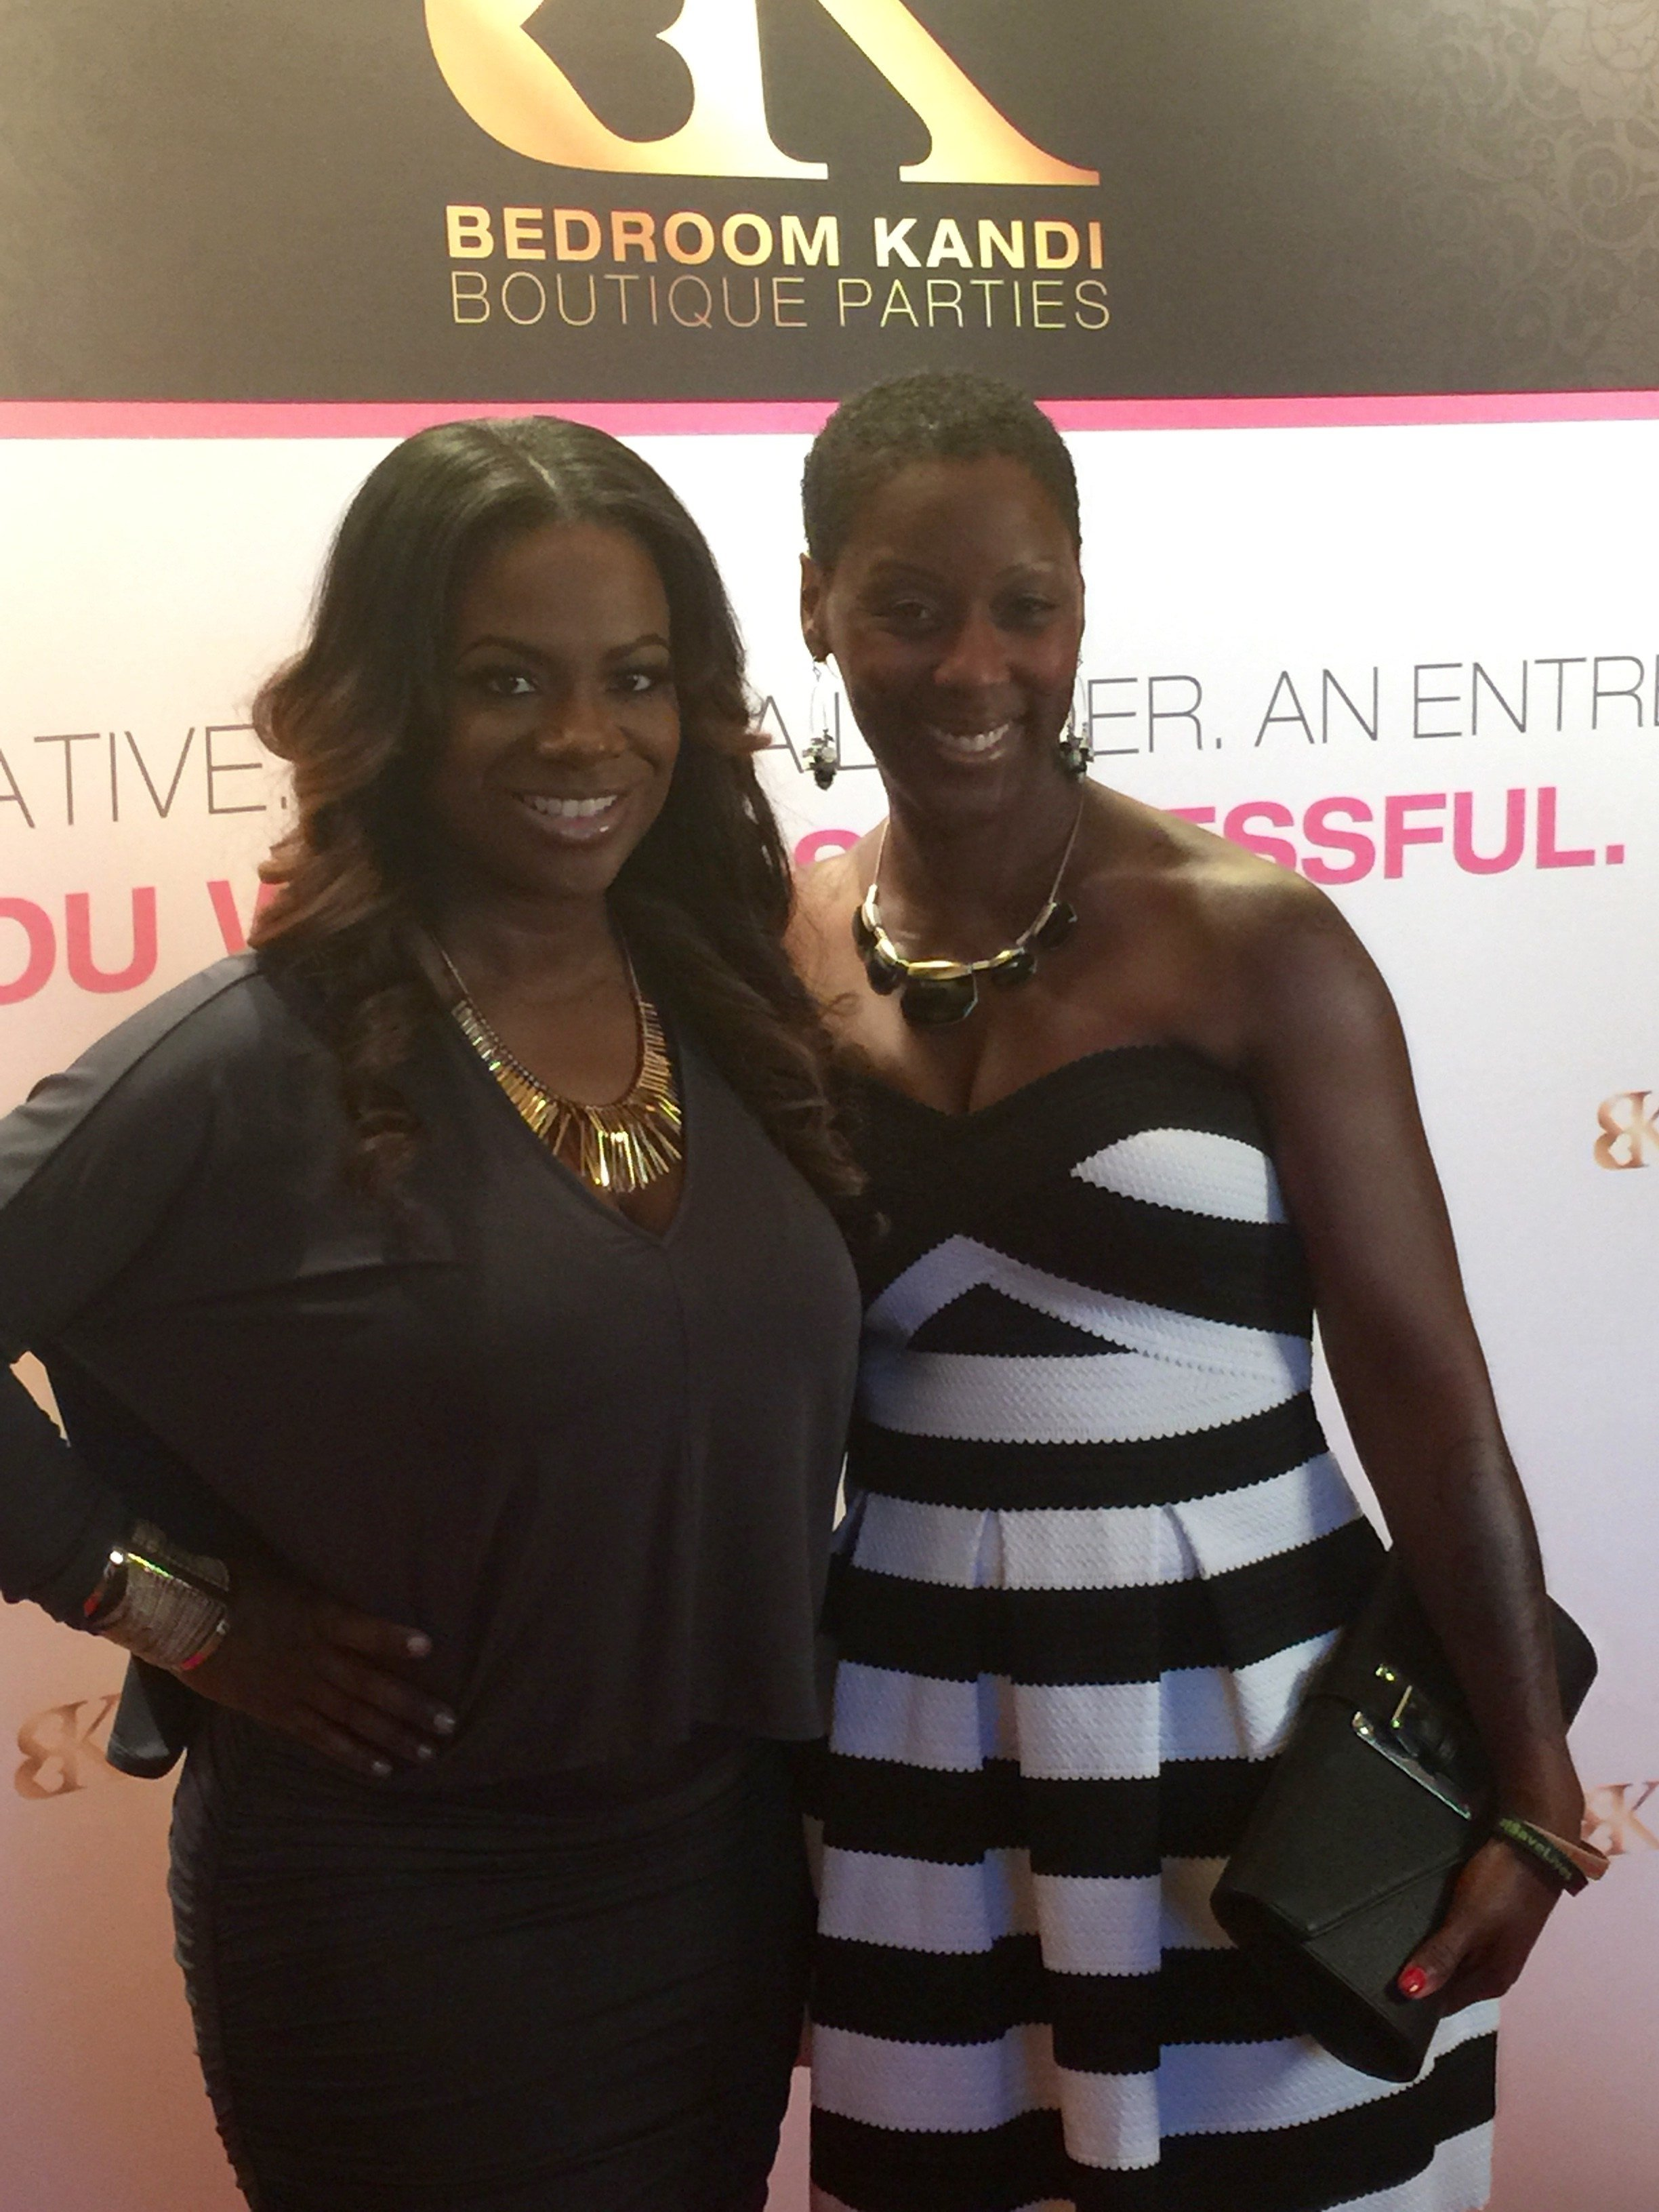 Best Kandi Burruss Bedroom Kandi Net Worth 100 Bedroom Kandi By With Pictures